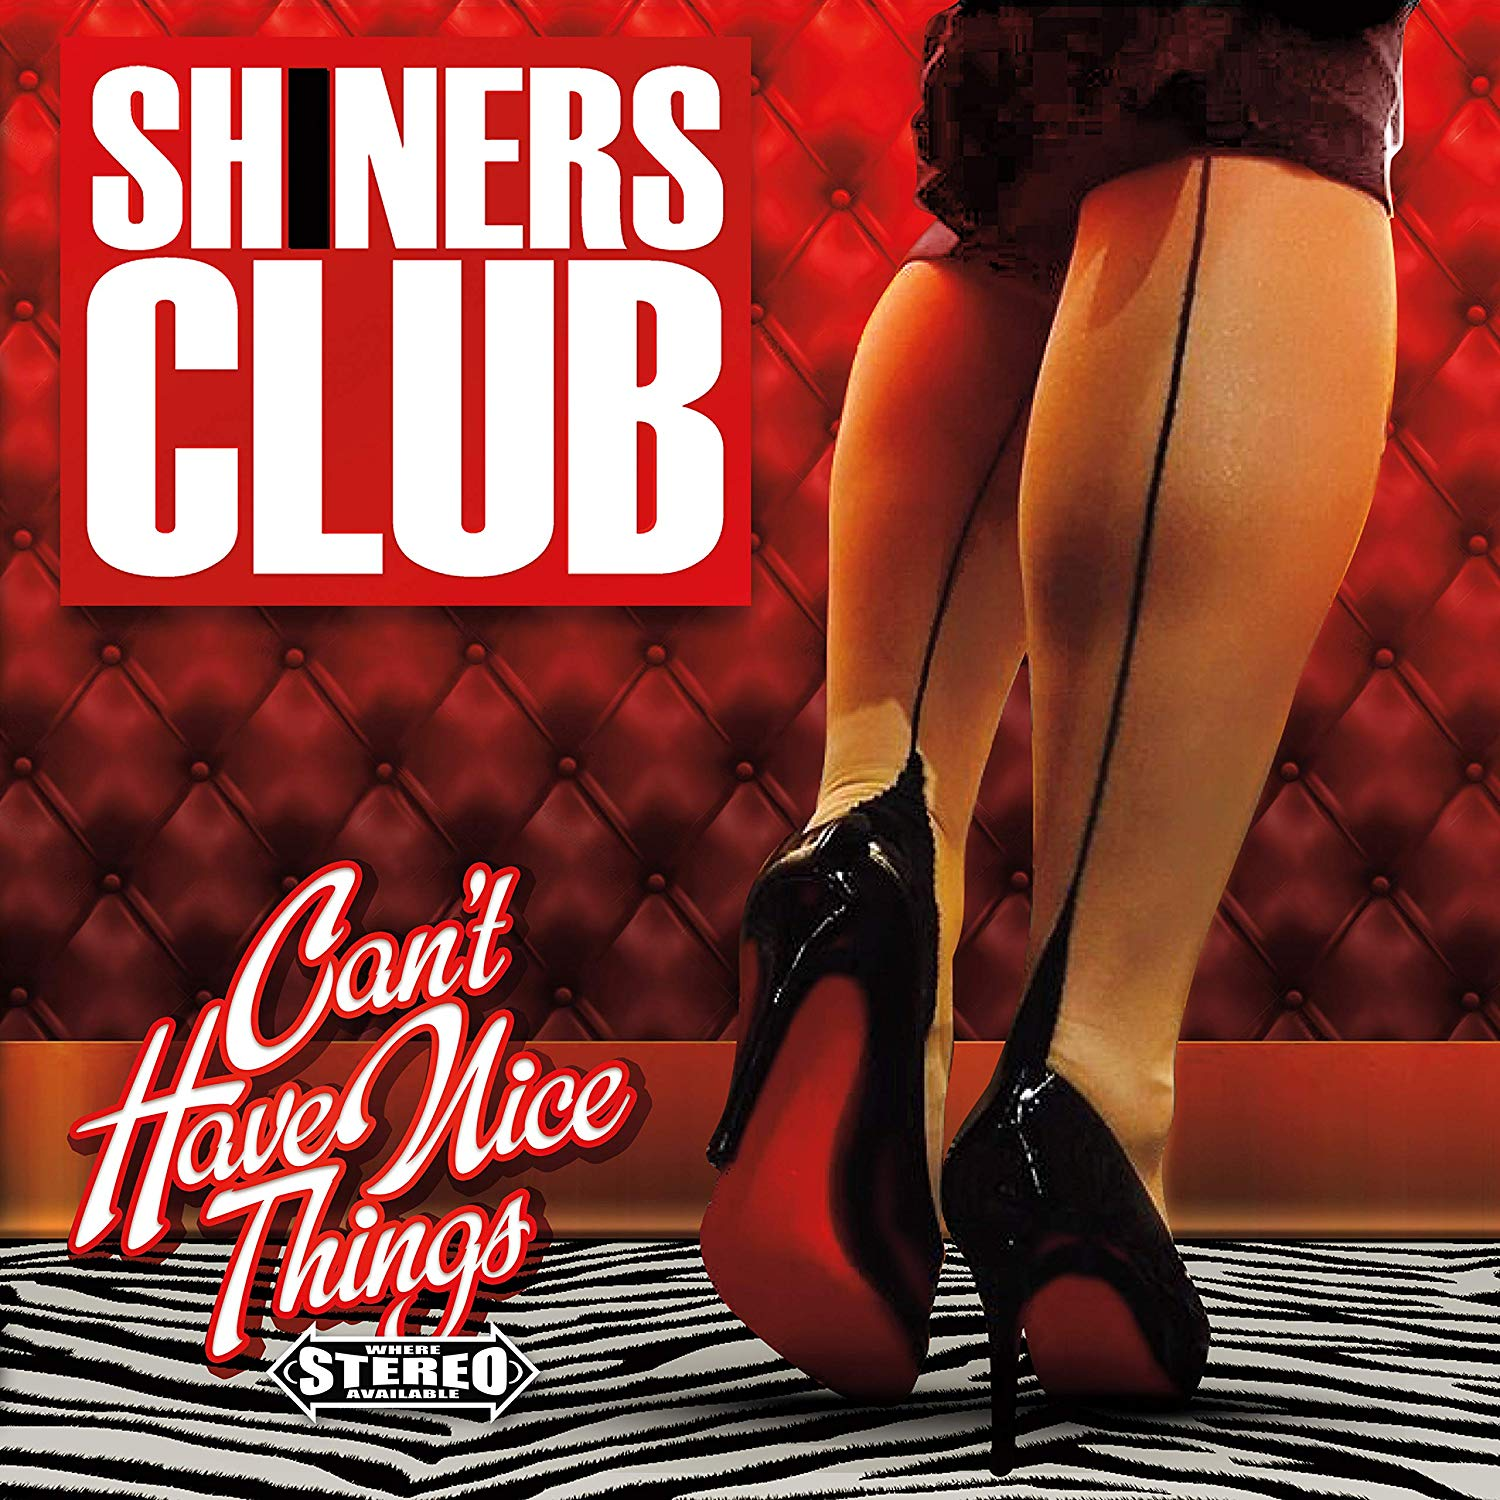 Shiners Club - Can't Have Nice Things